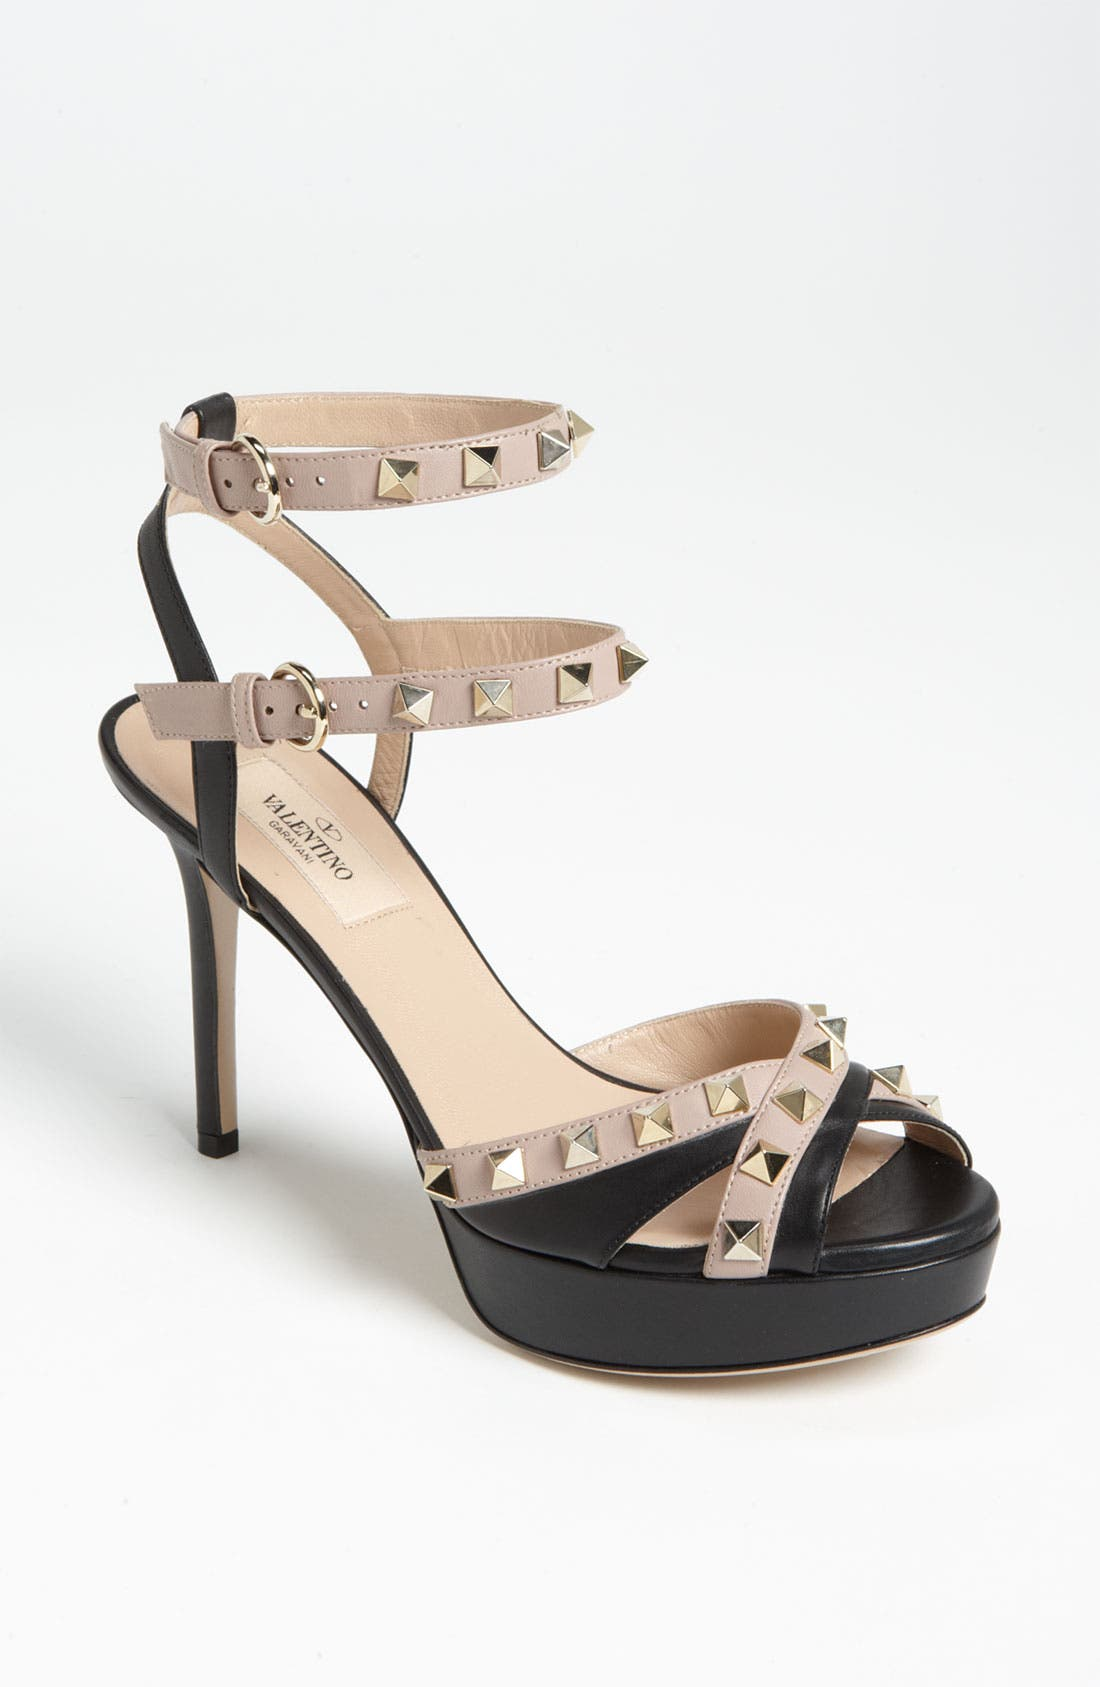 Alternate Image 1 Selected - Valentino 'Rockstud' Sandal